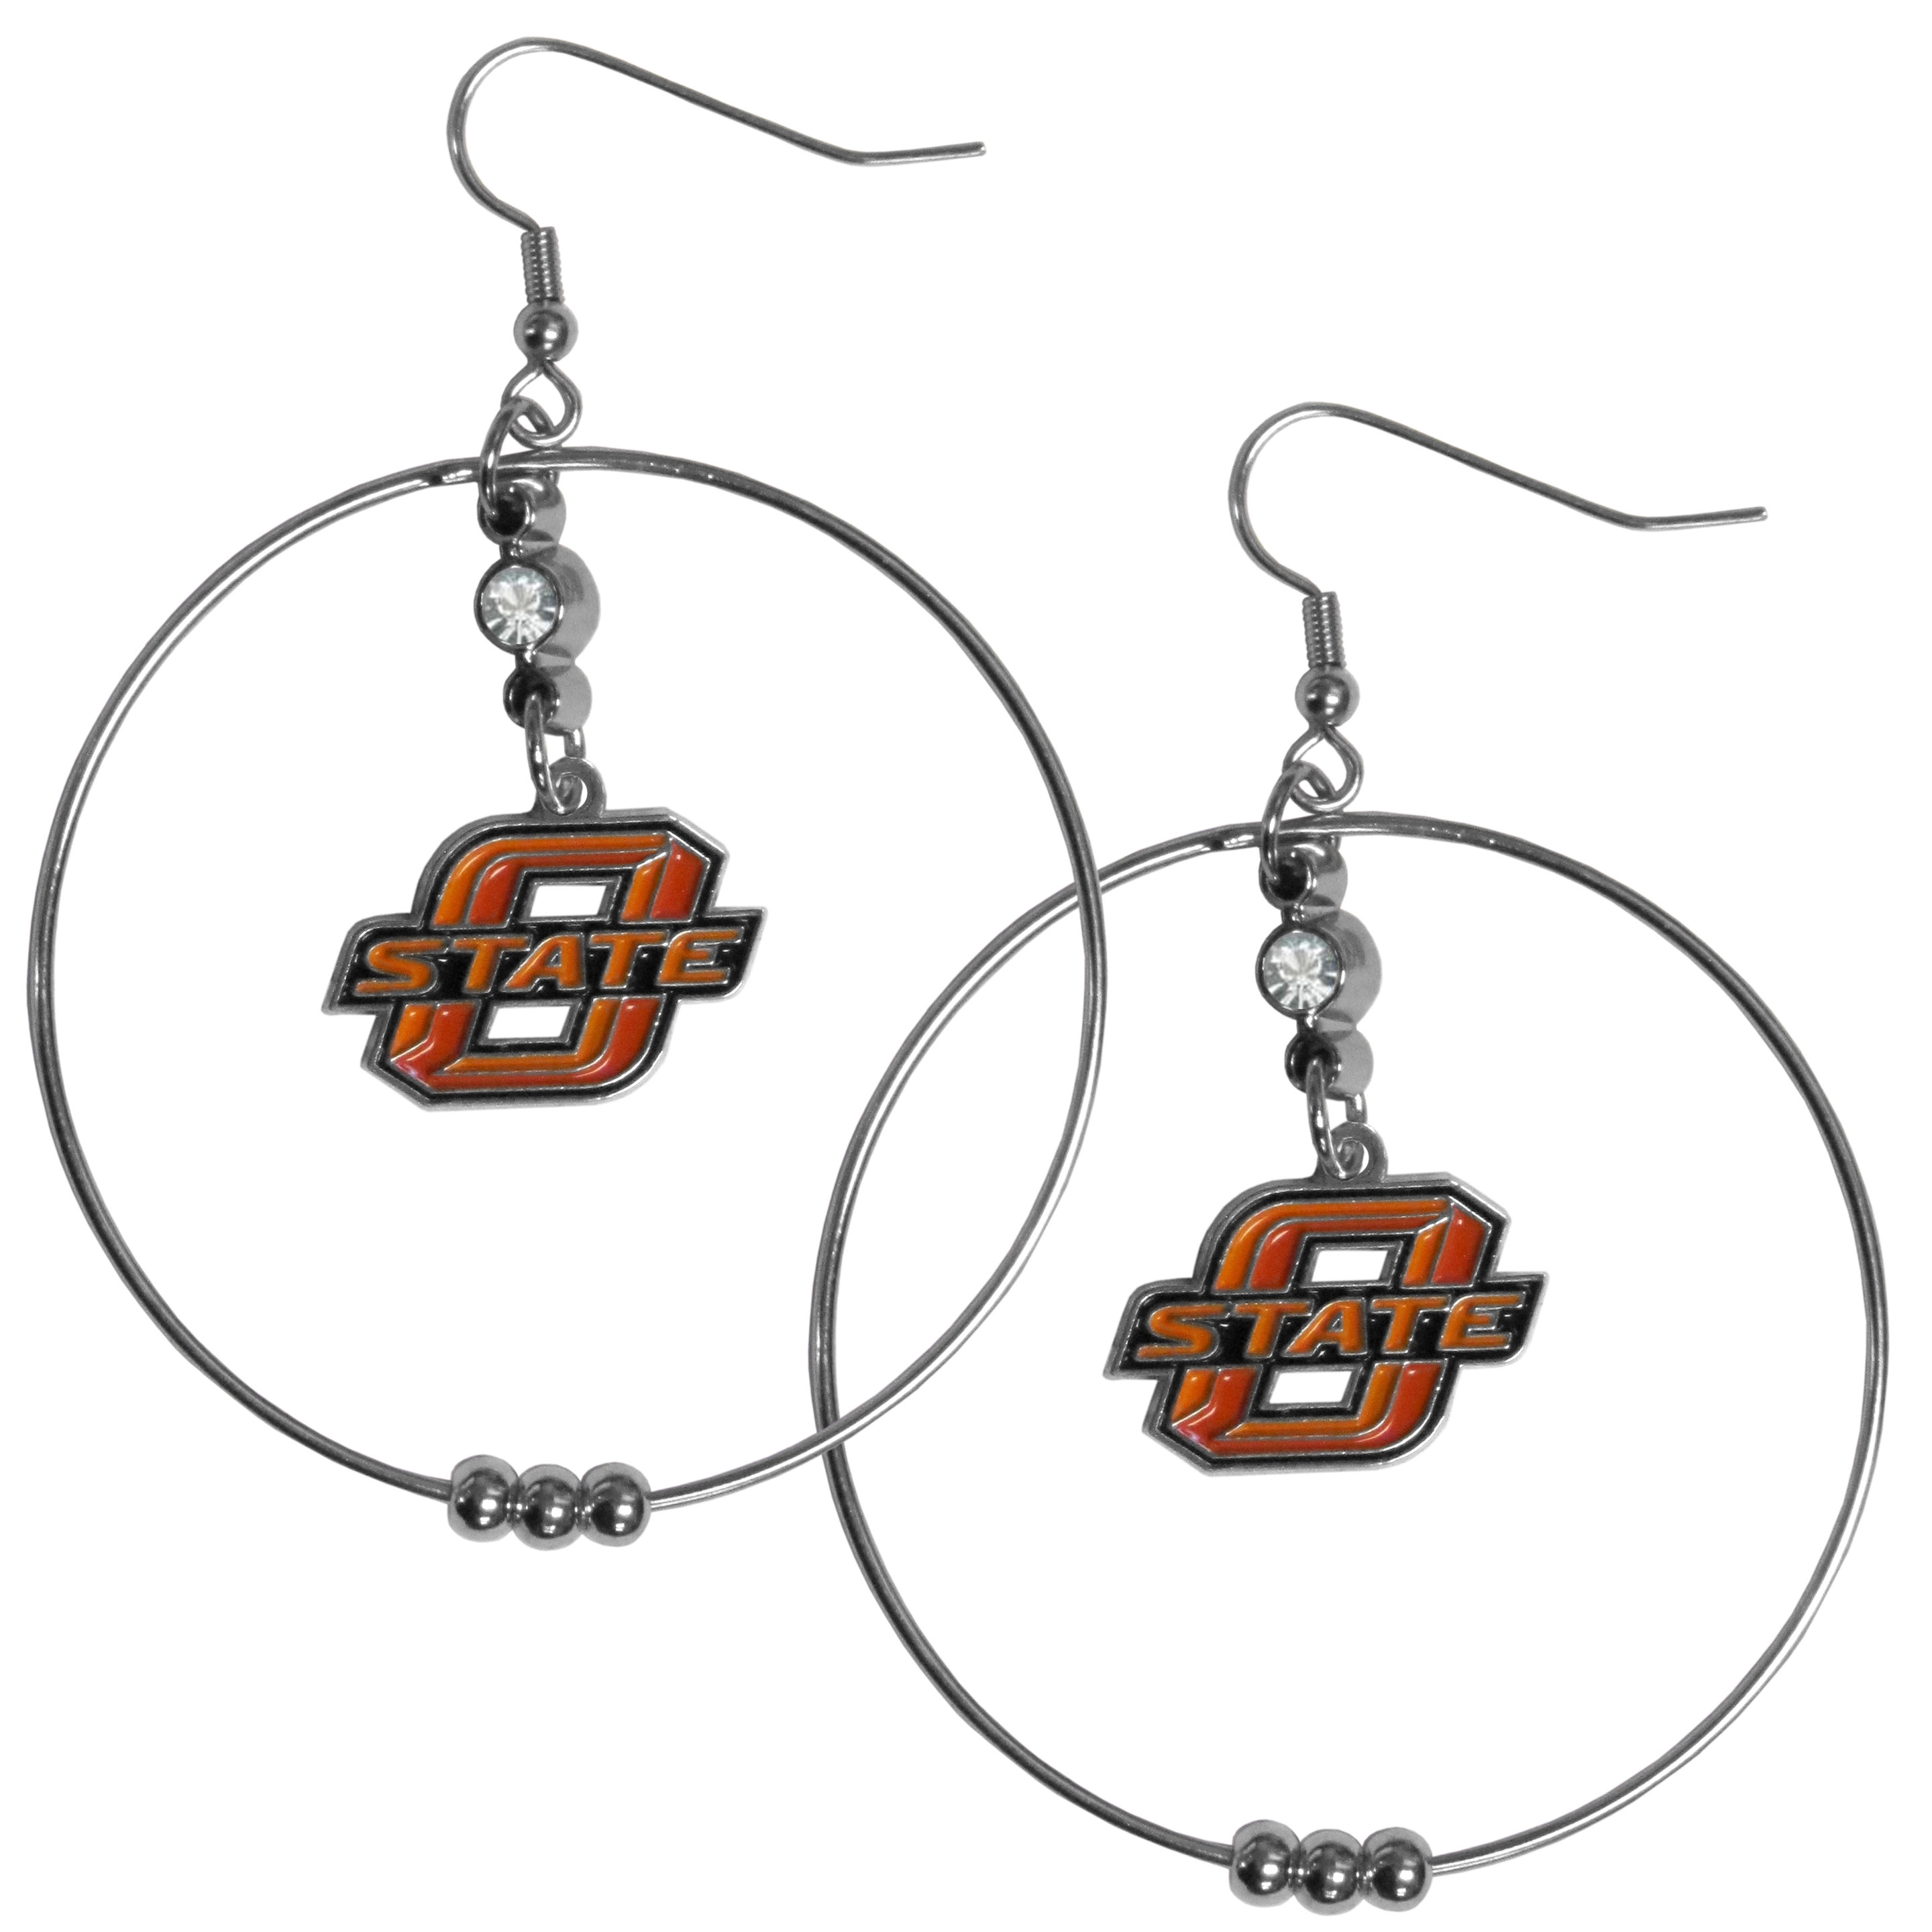 Oklahoma State Cowboys 2 Inch Hoop Earrings - Our large hoop earrings have a fully cast and enameled Oklahoma State Cowboys charm with enameled detail and a high polish nickel free chrome finish and rhinestone access. Hypoallergenic fishhook posts.